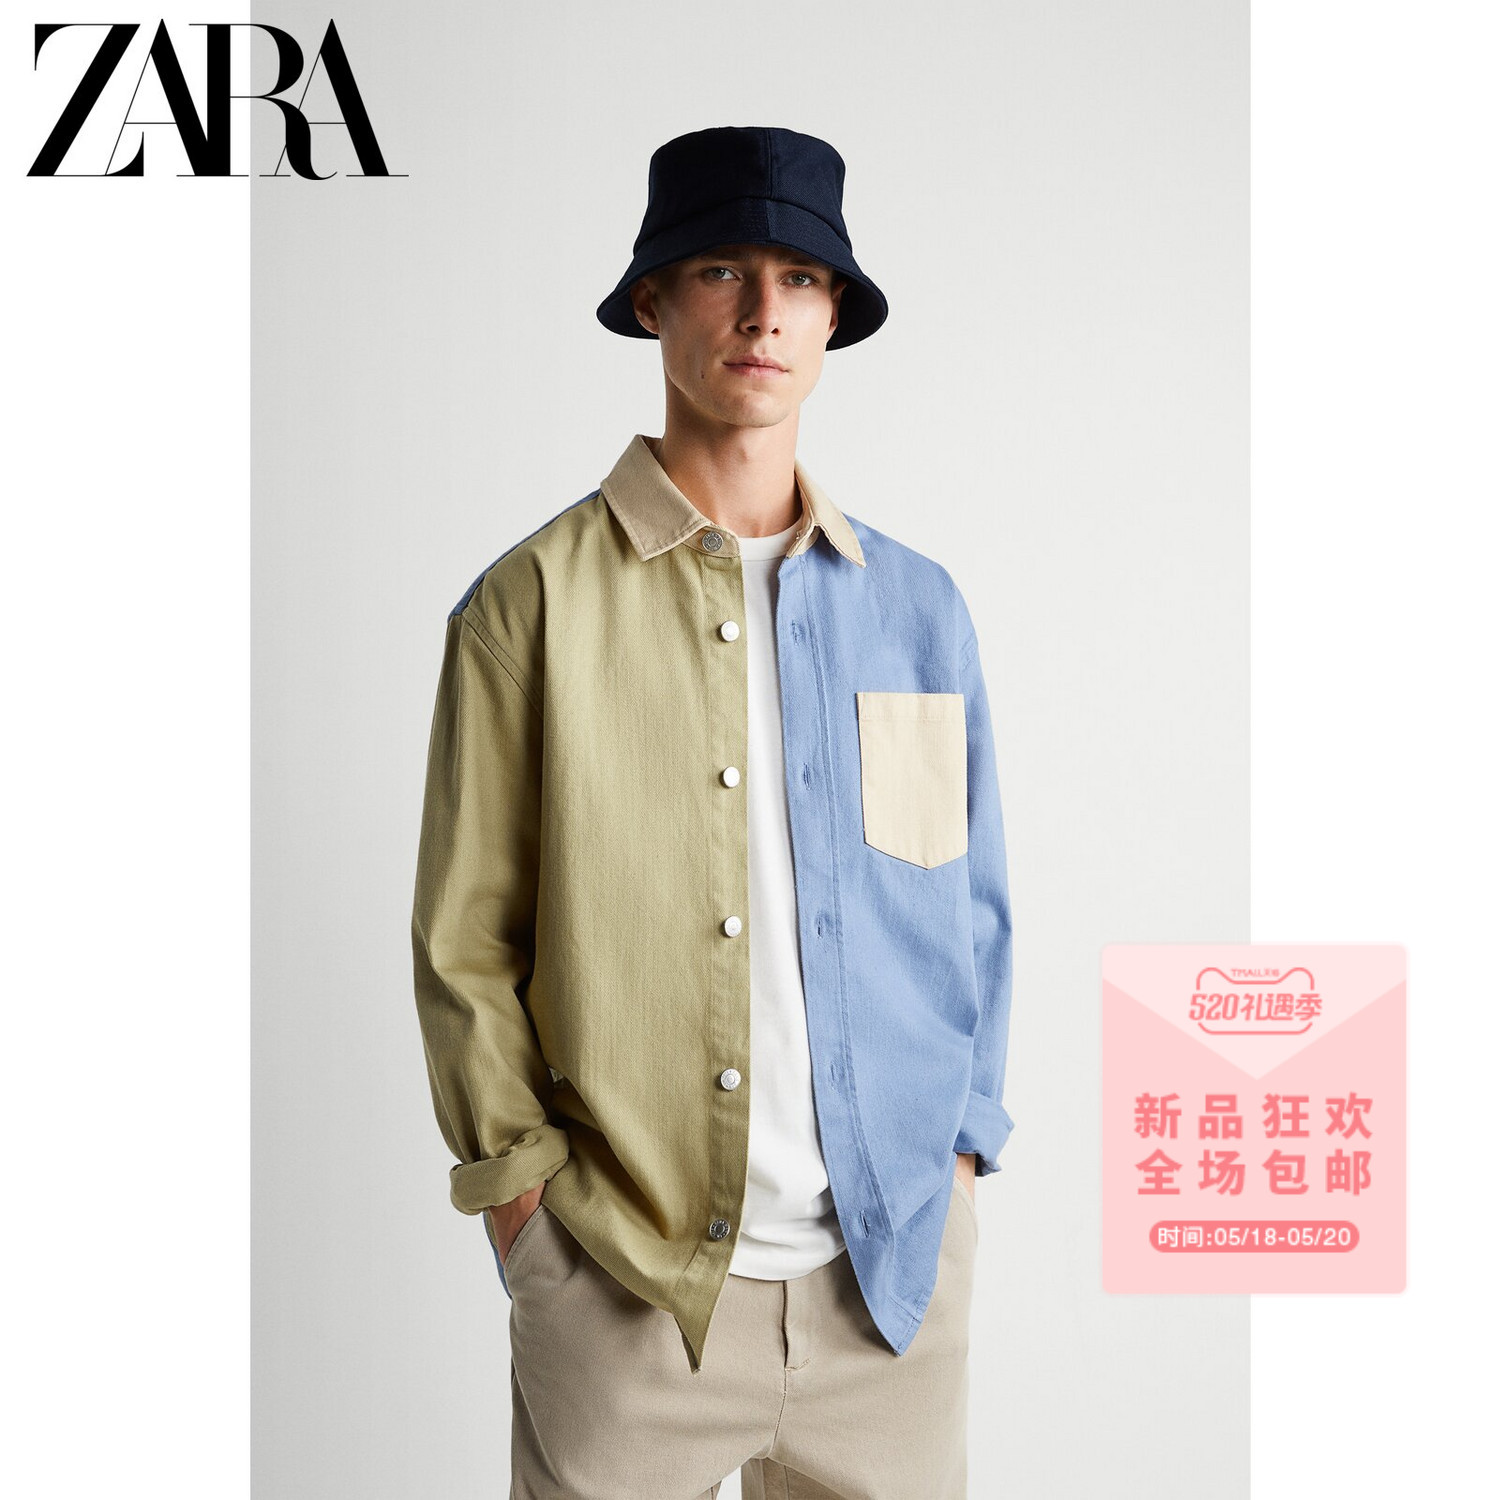 ZARA summer new men's clothing shirt jacket jacket 03562315400